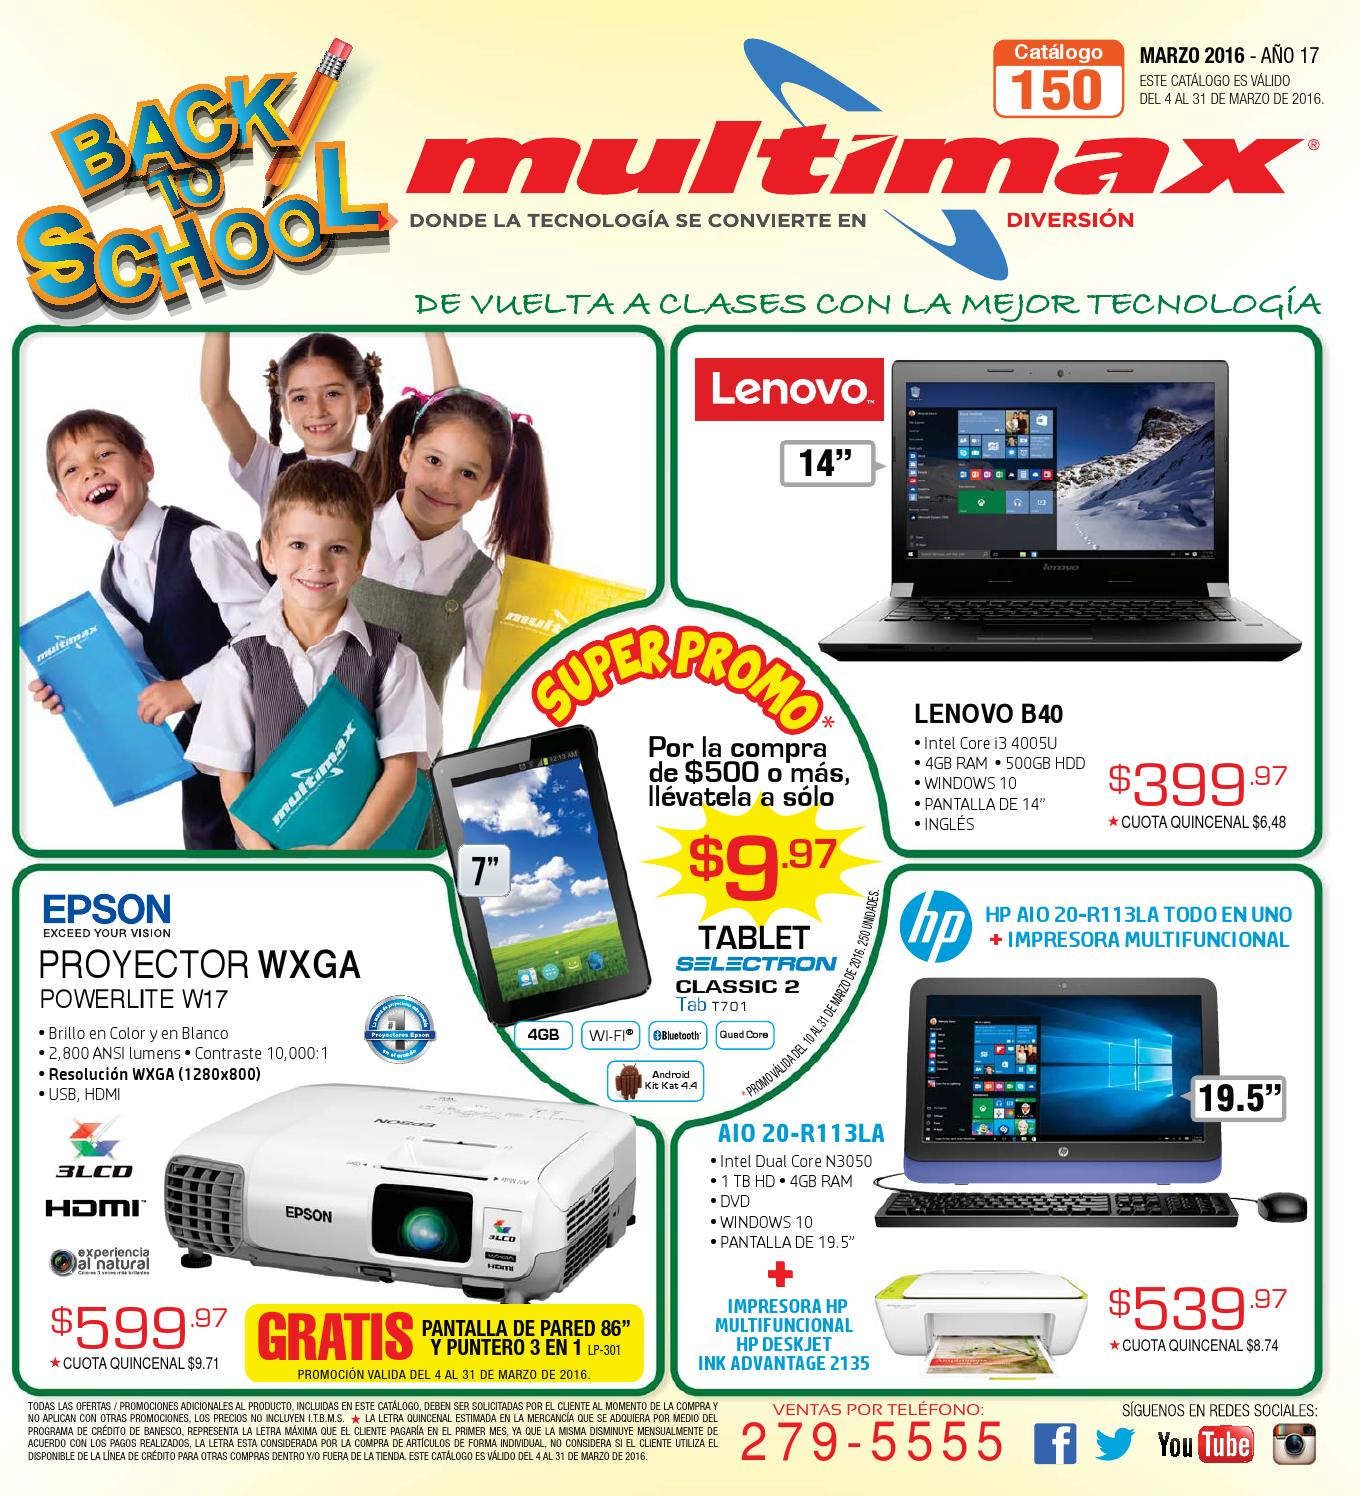 Catalogo de ofertas multimax marzo 2016 by interiores for Catalogo mi casa 2016